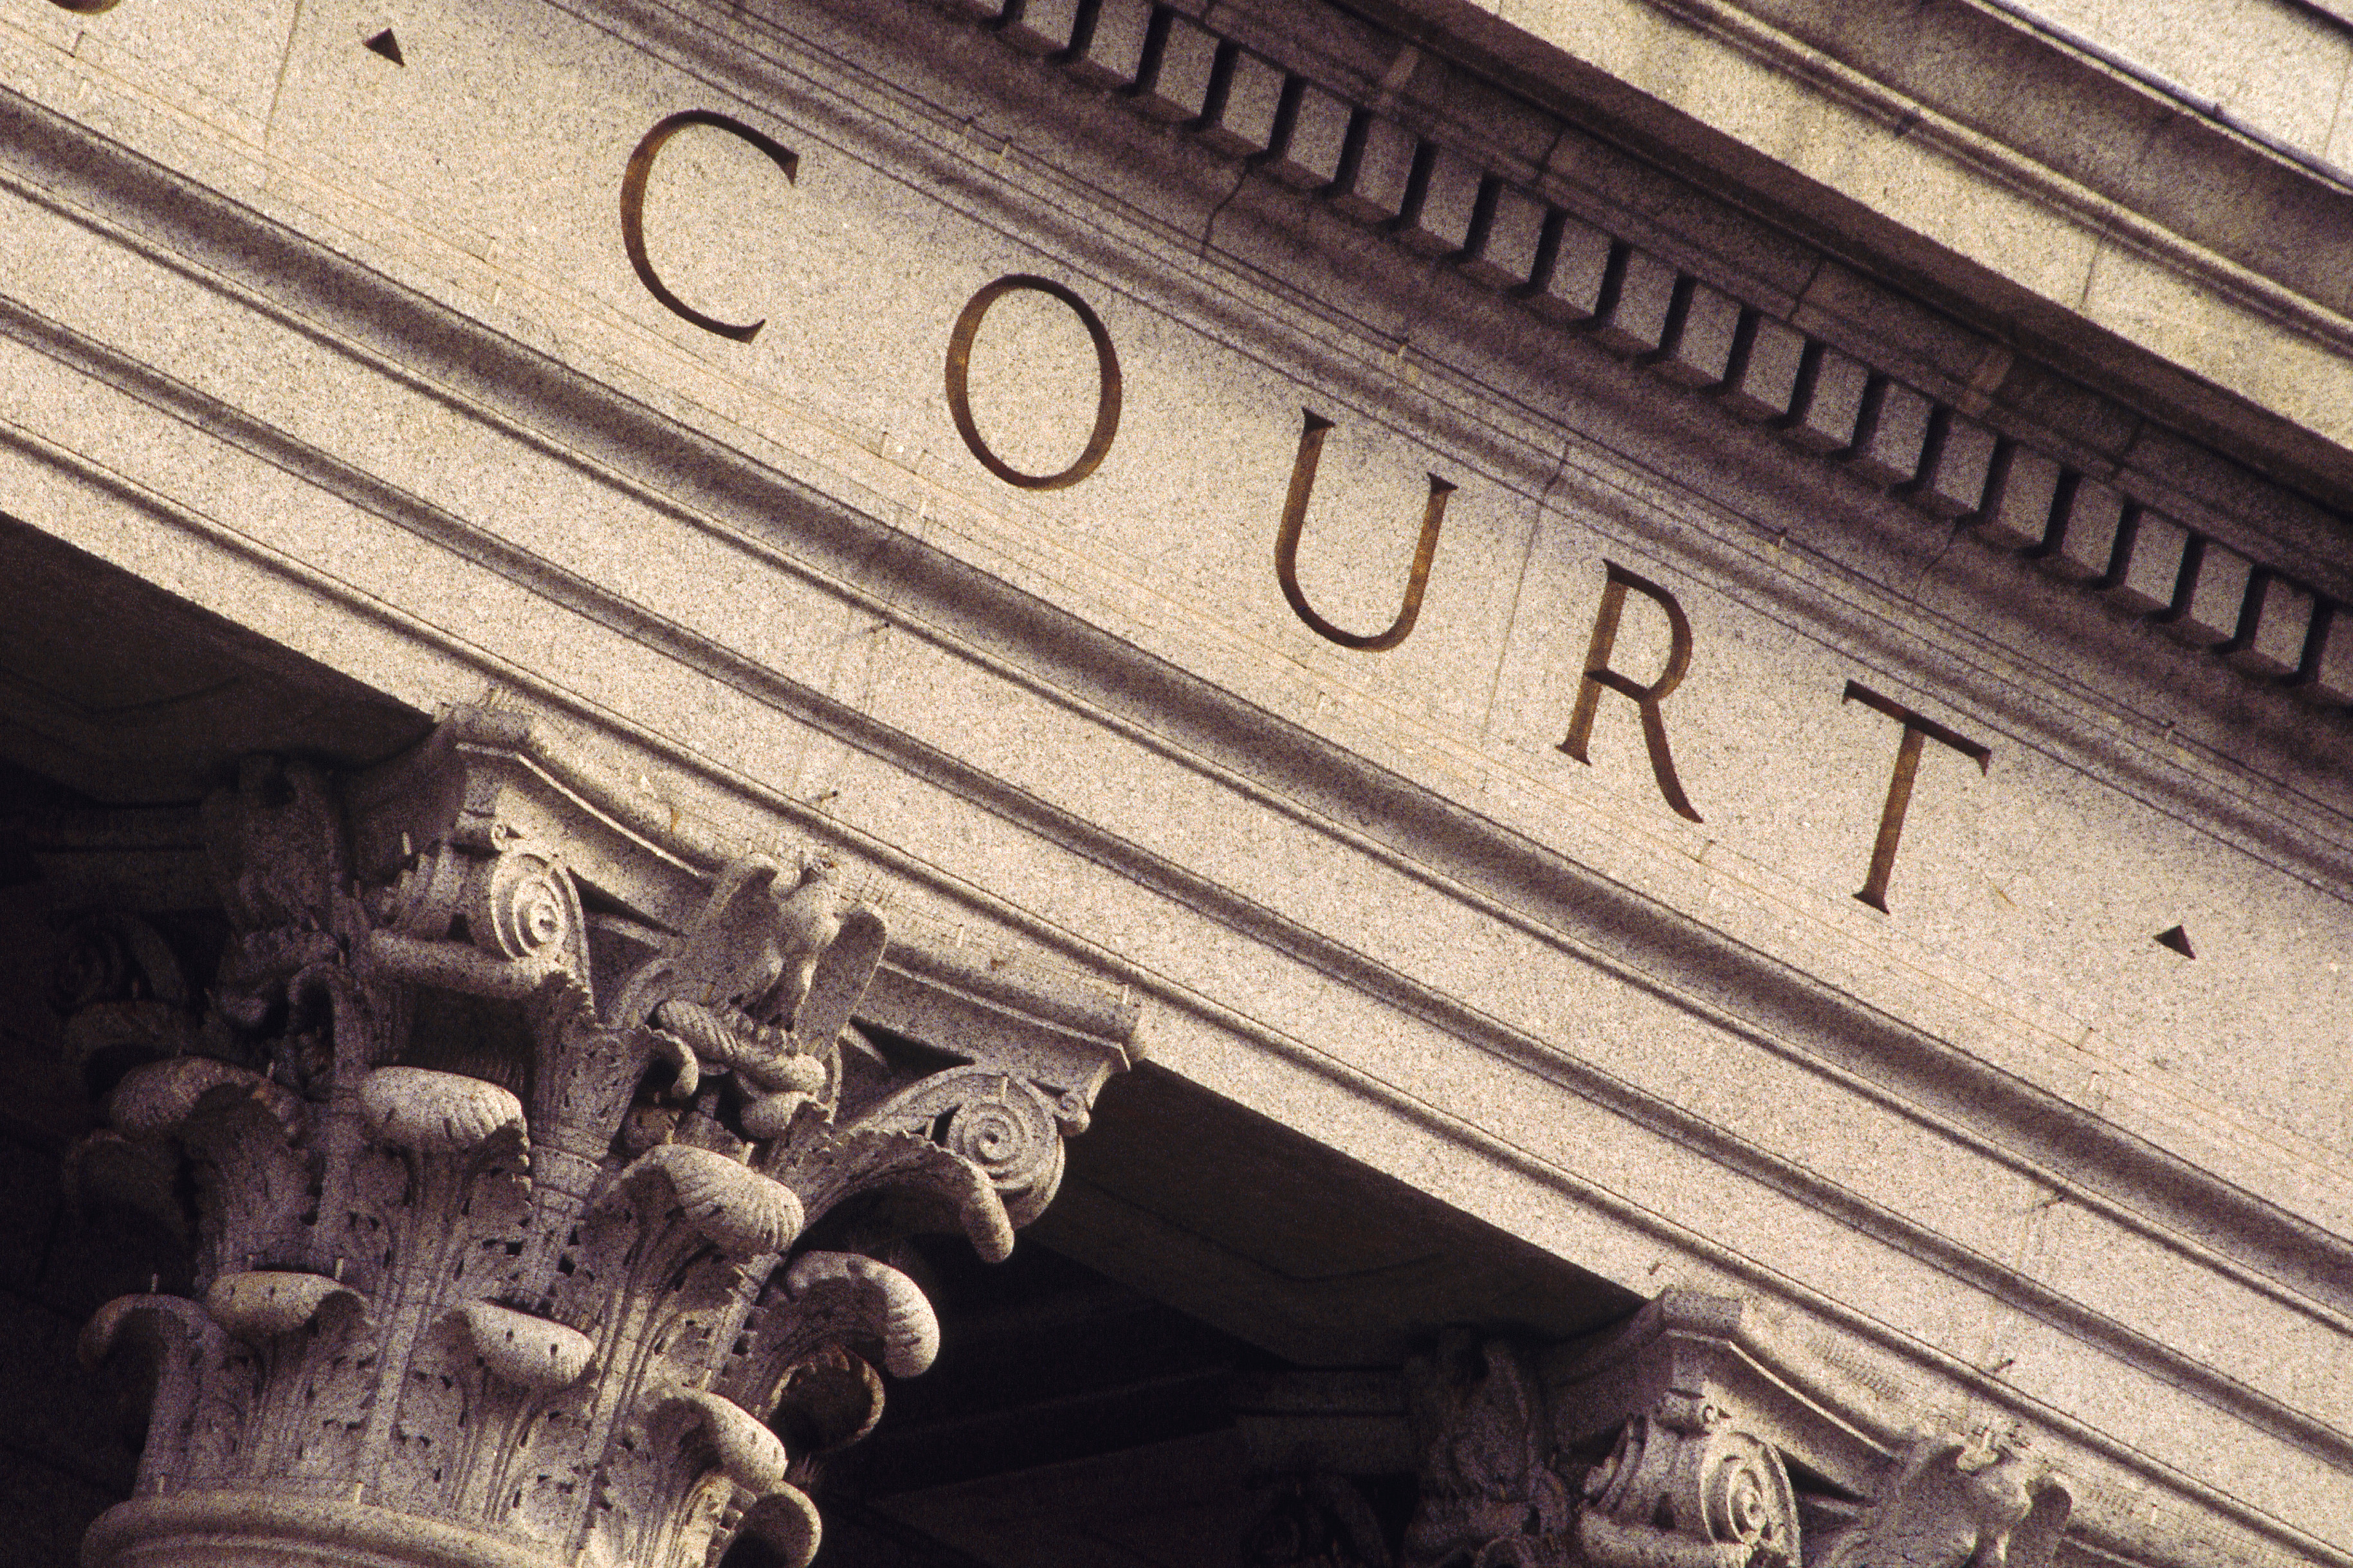 Statute of Limitations in Kentucky for a Judgment & Lien on